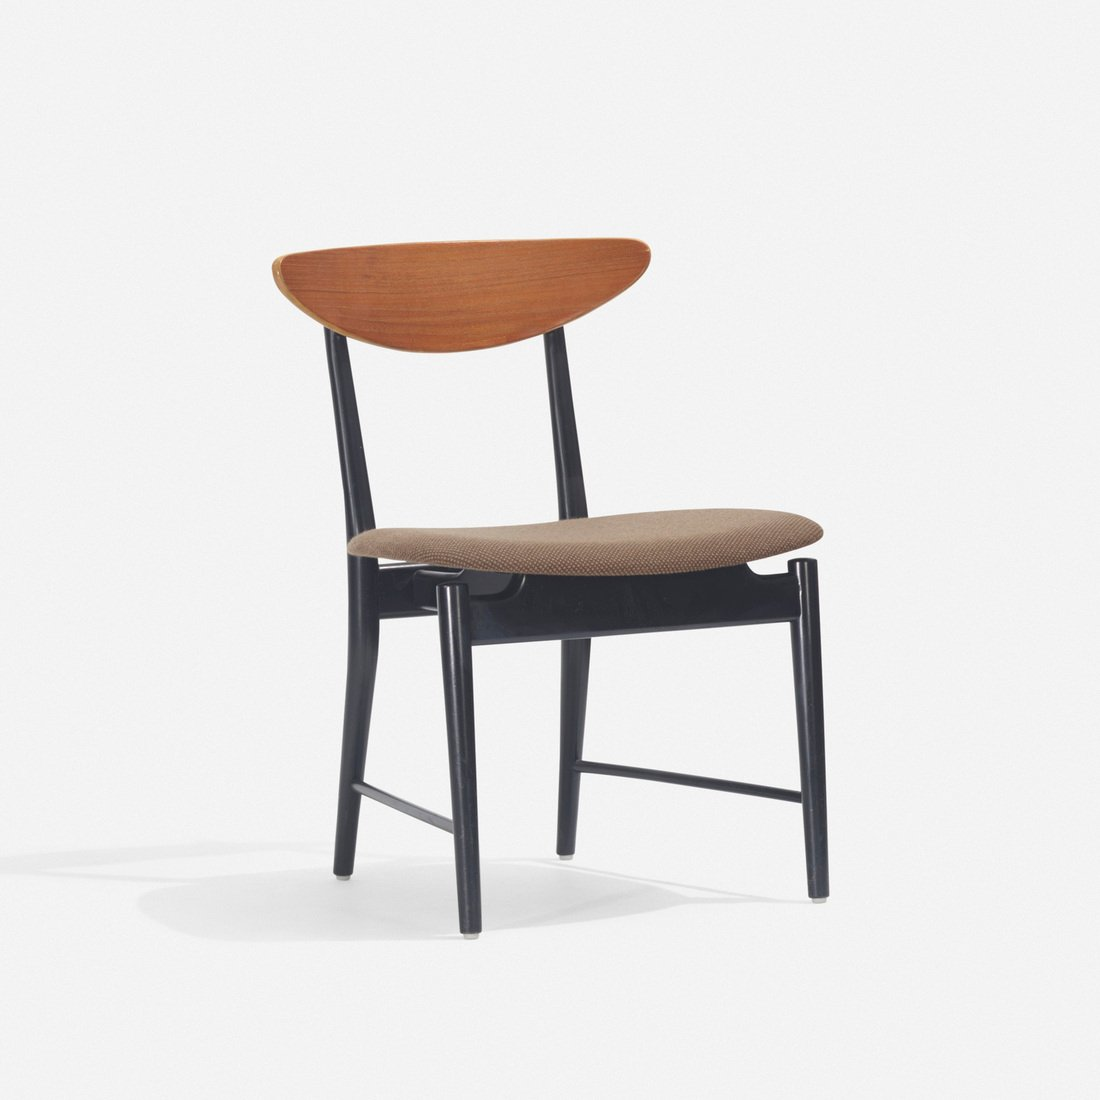 Finn Juhl, dining chair